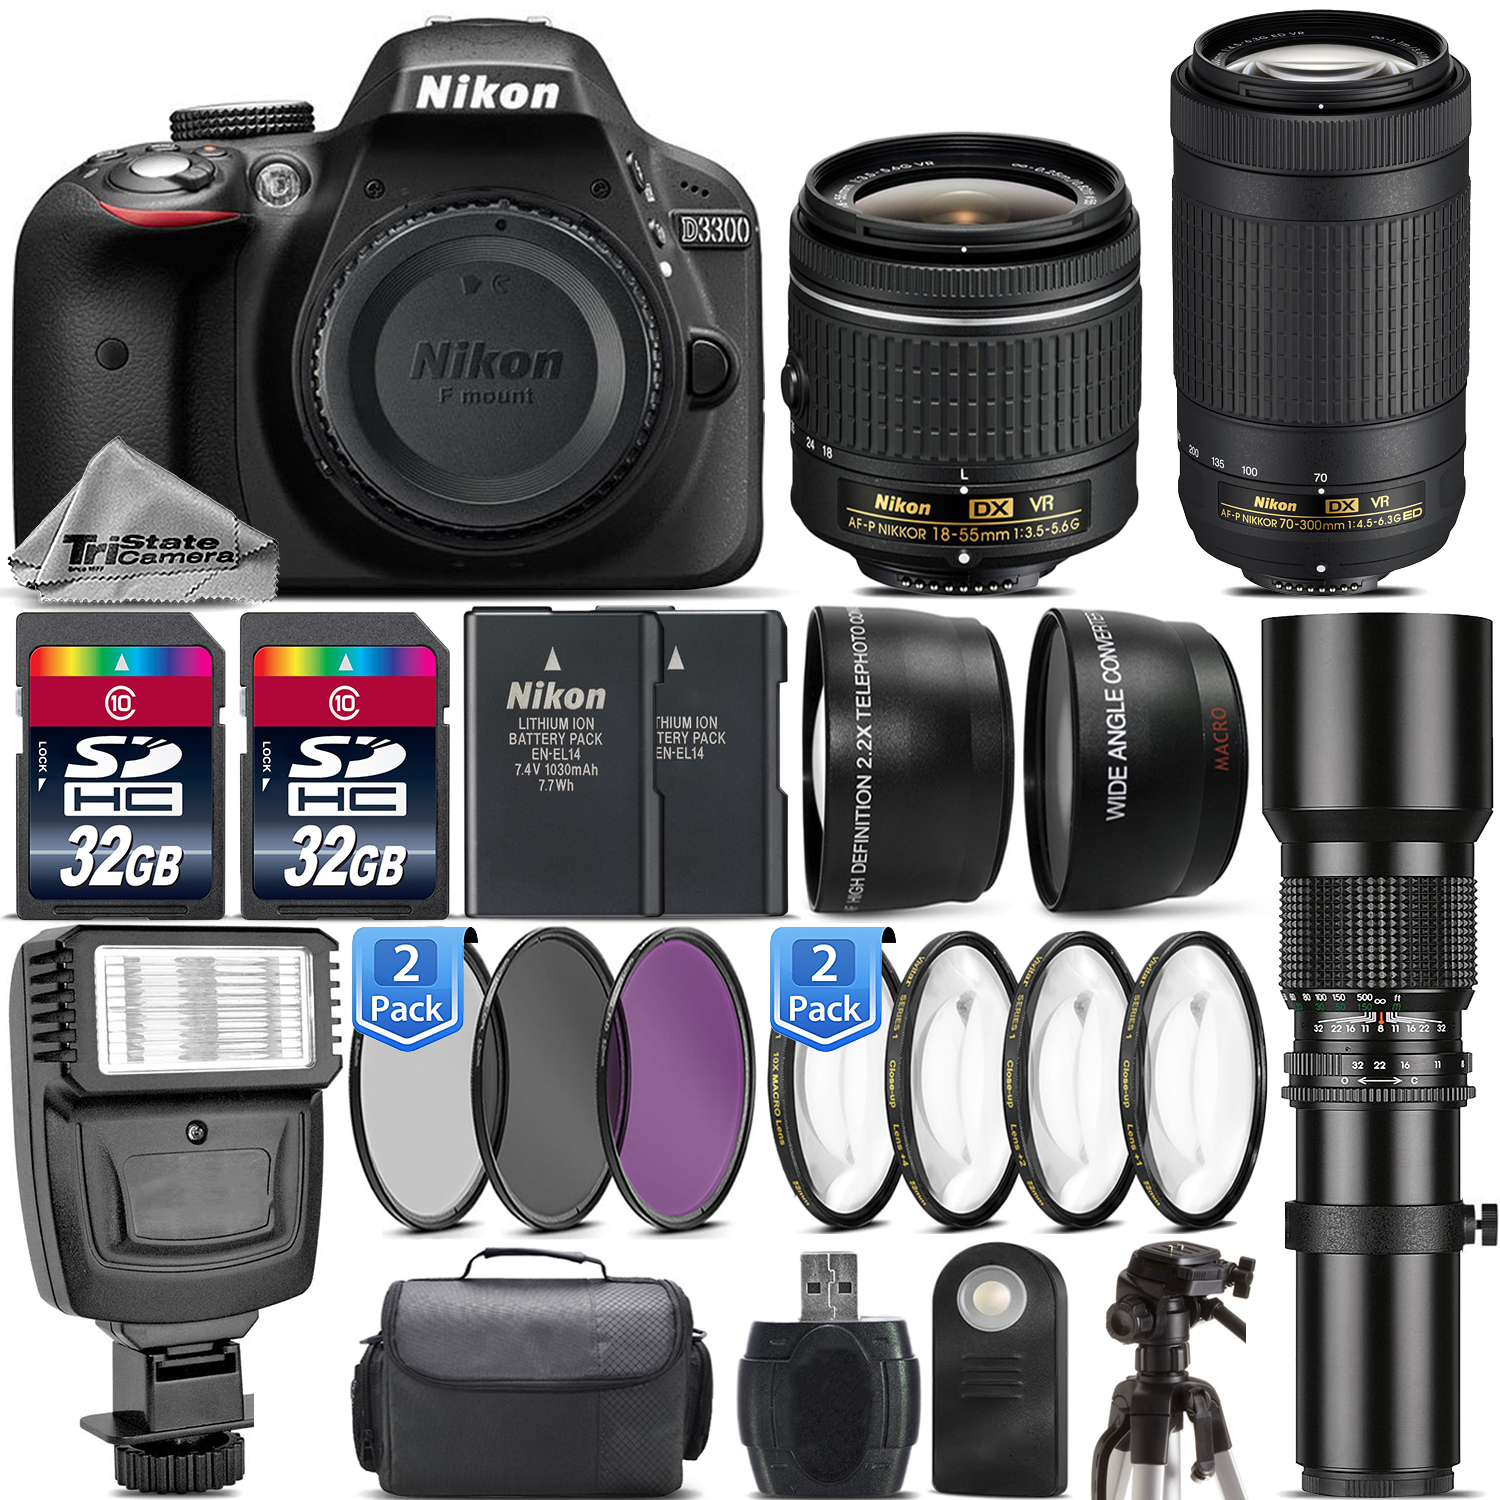 Nikon D3300 DSLR Camera + Nikon 18-55mm VR + AF P 70-300mm VR + 500mm - 64GB Kit